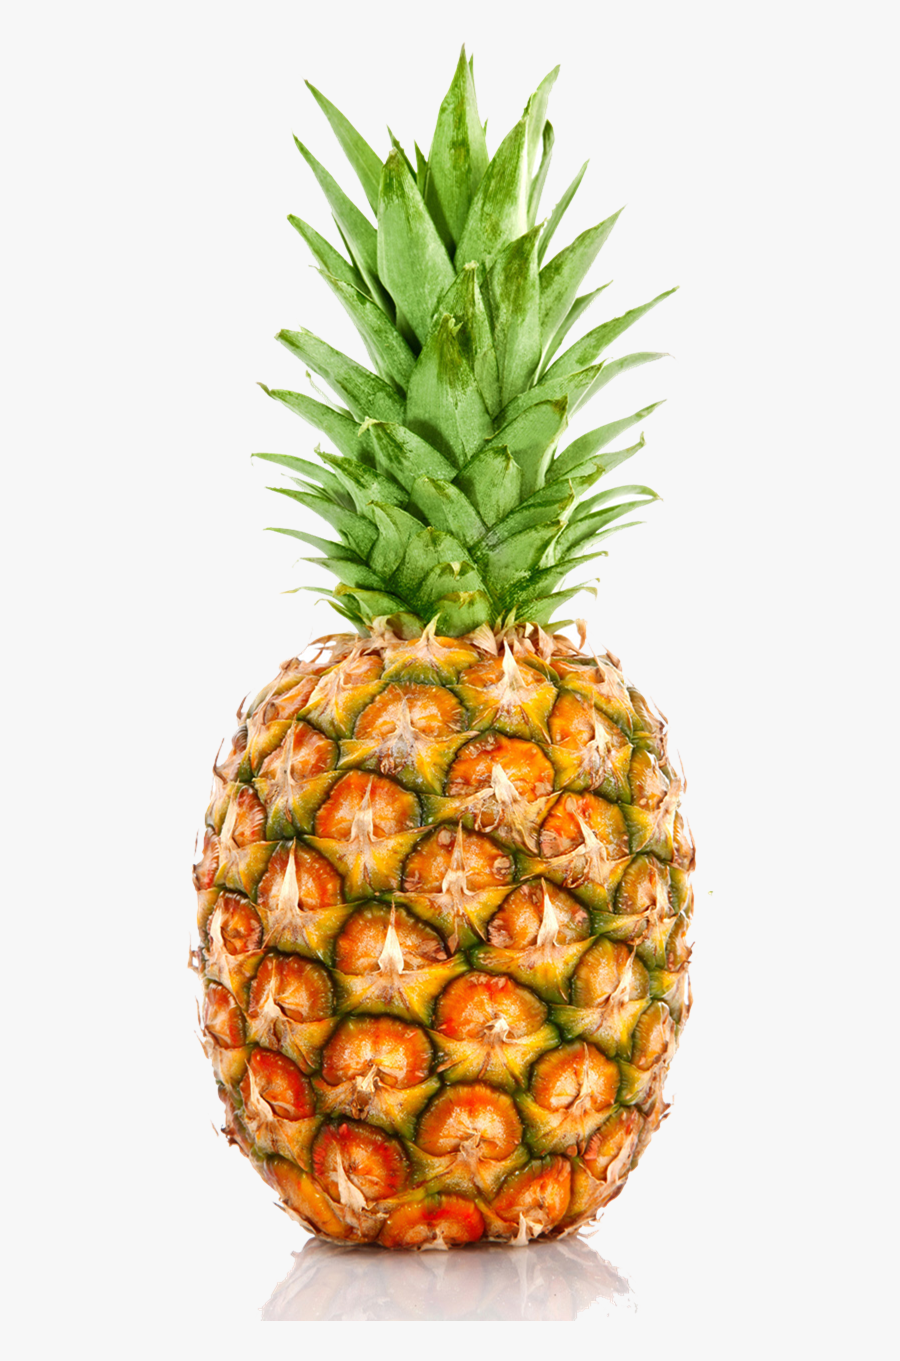 Transparent Pineapples Clipart - Individual Fruits And Vegetables, Transparent Clipart